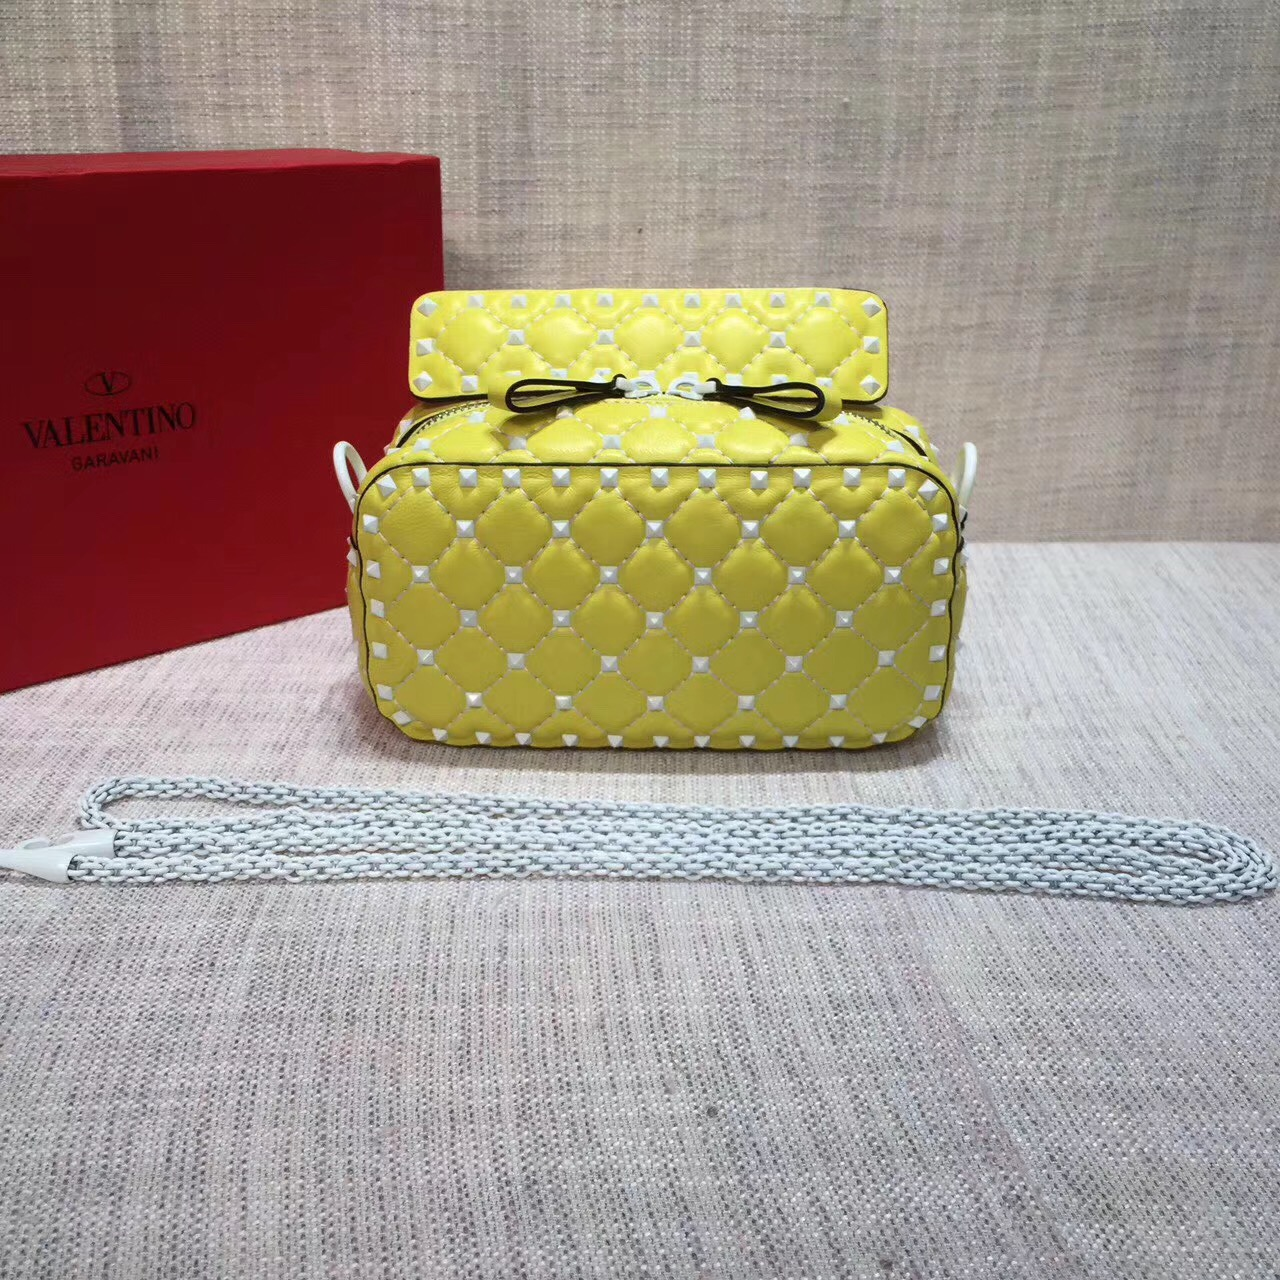 Valentino Free Rockstud Spike Camera Bag Yellow